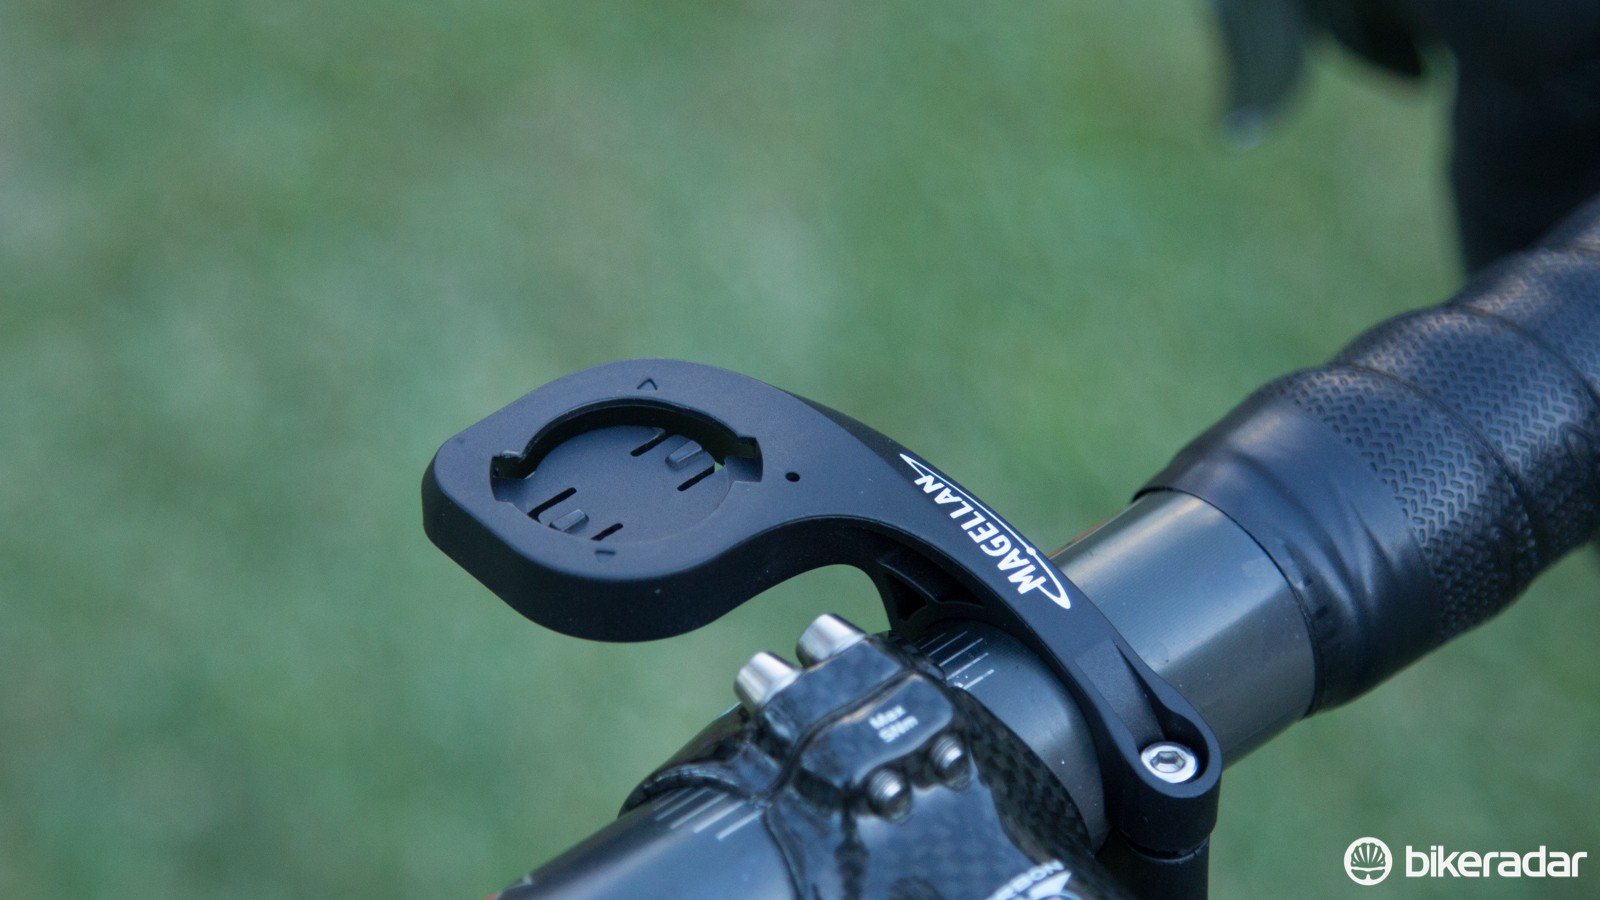 The included plastic Out-in-front mount works perfectly - assuming you have 31.8mm diameter bars